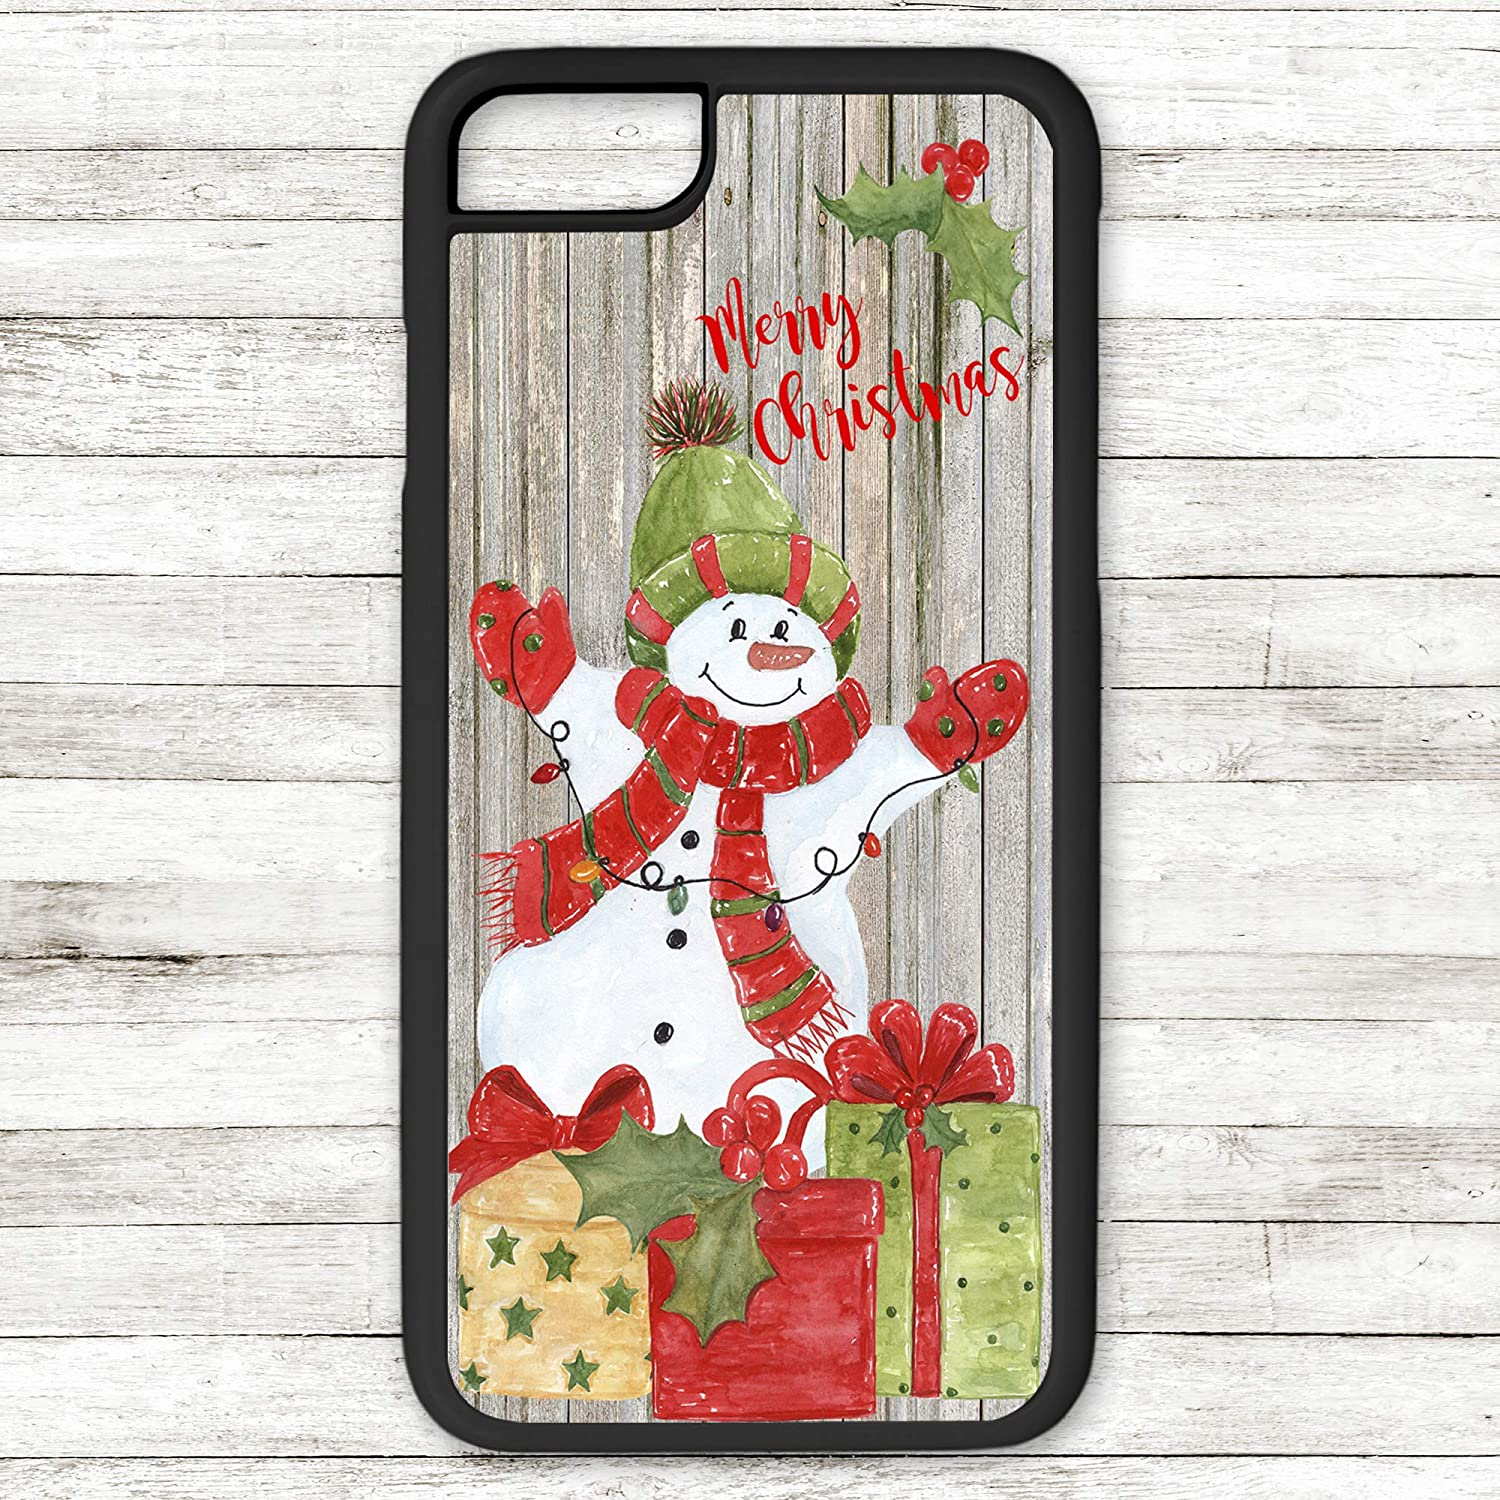 Christmas Phone Case.Amazon Com Merry Christmas Phone Case Snowman Gifts With